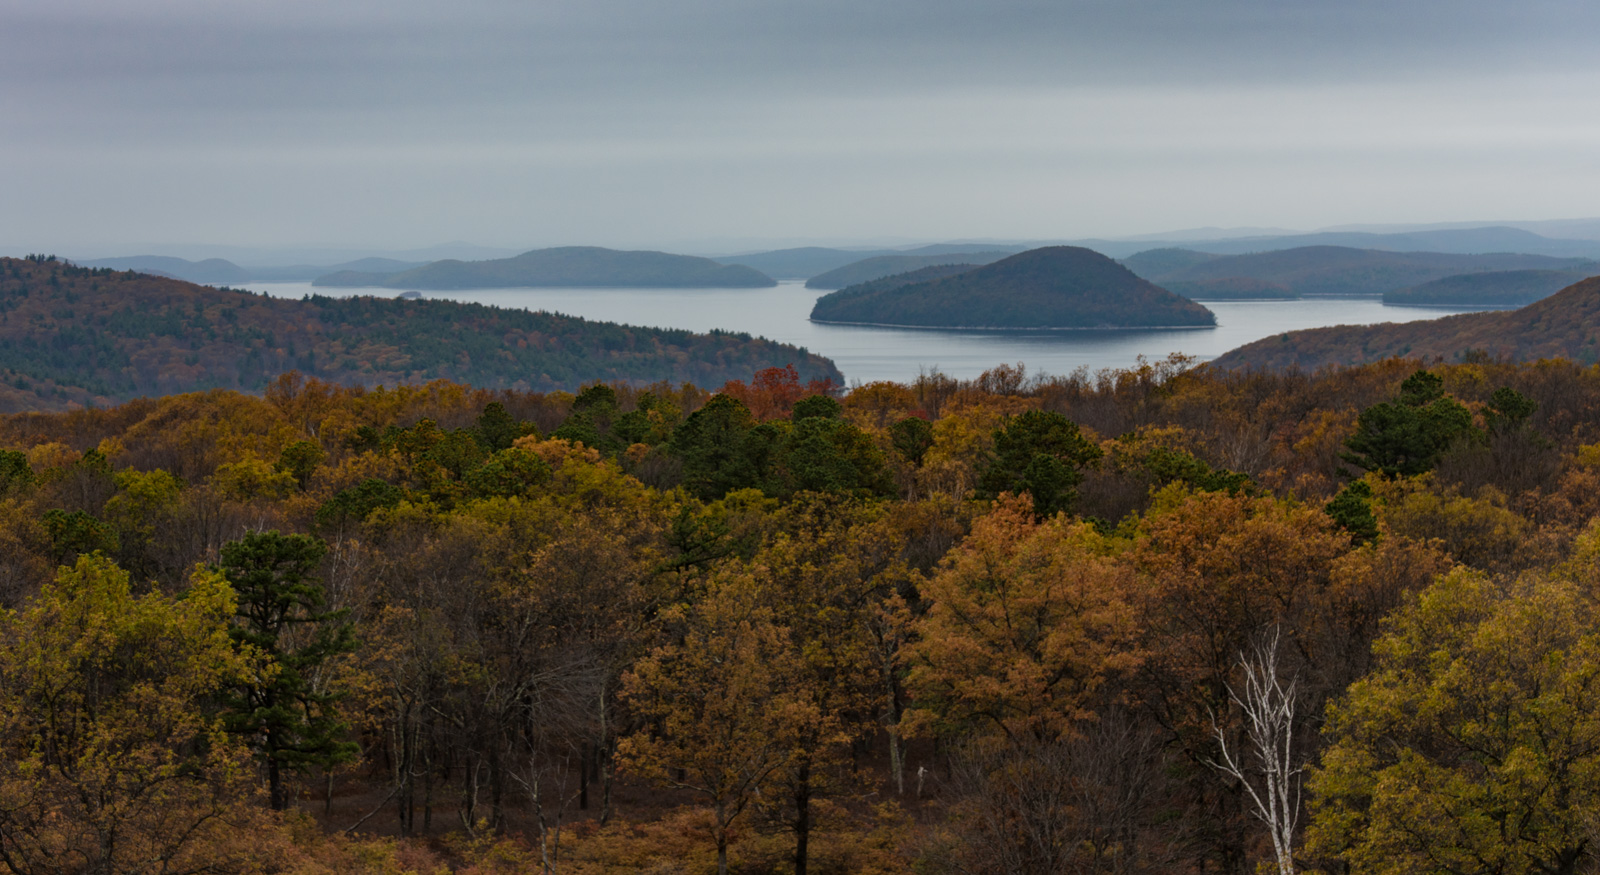 View of the reservoir from the tower on quabbin hill